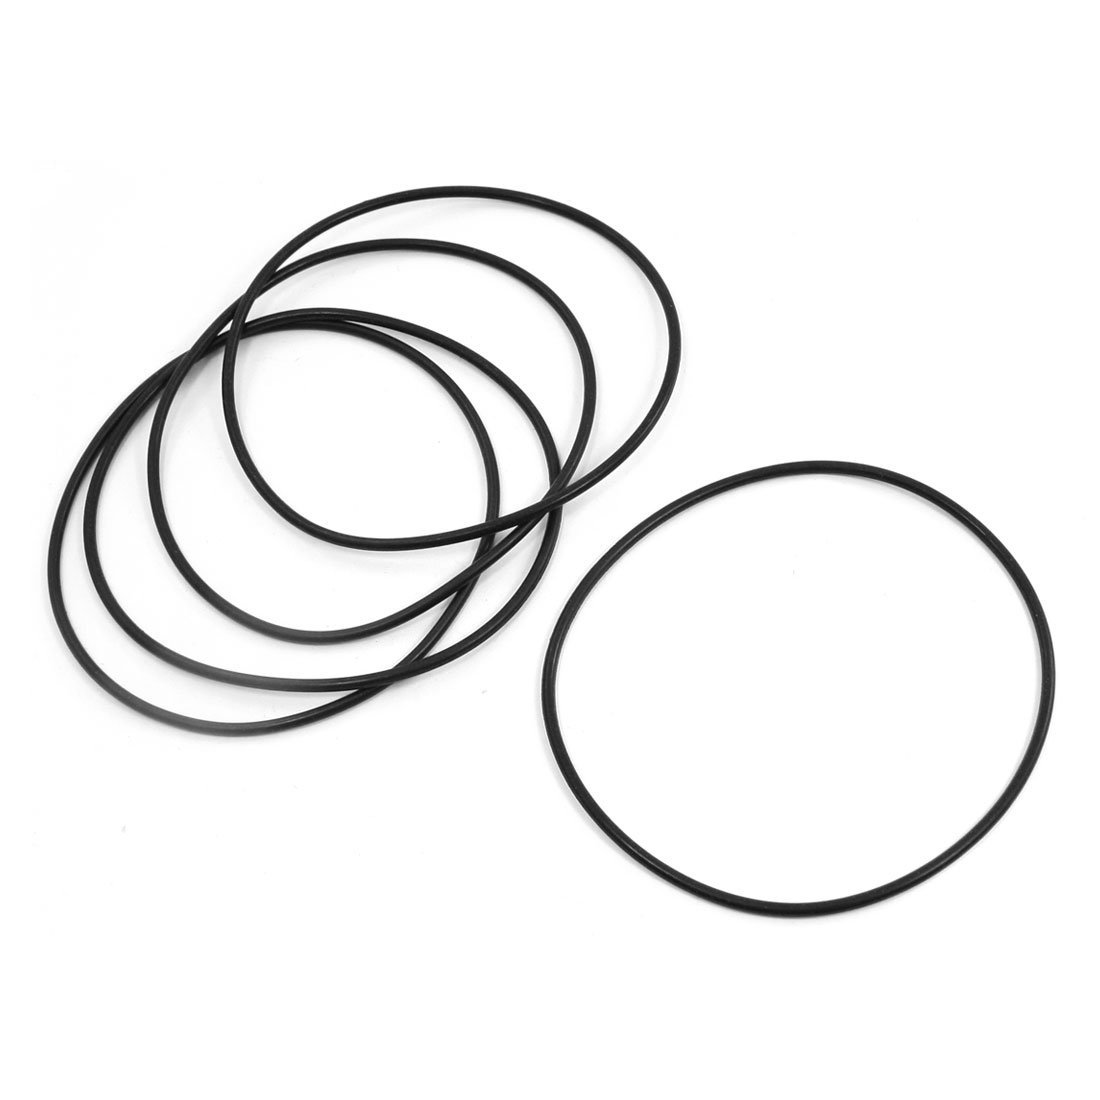 5pcs Metric 130mm OD 3.5mm Thick Industrial Rubber O Ring Seals Black Sourcingmap a14022100ux0189